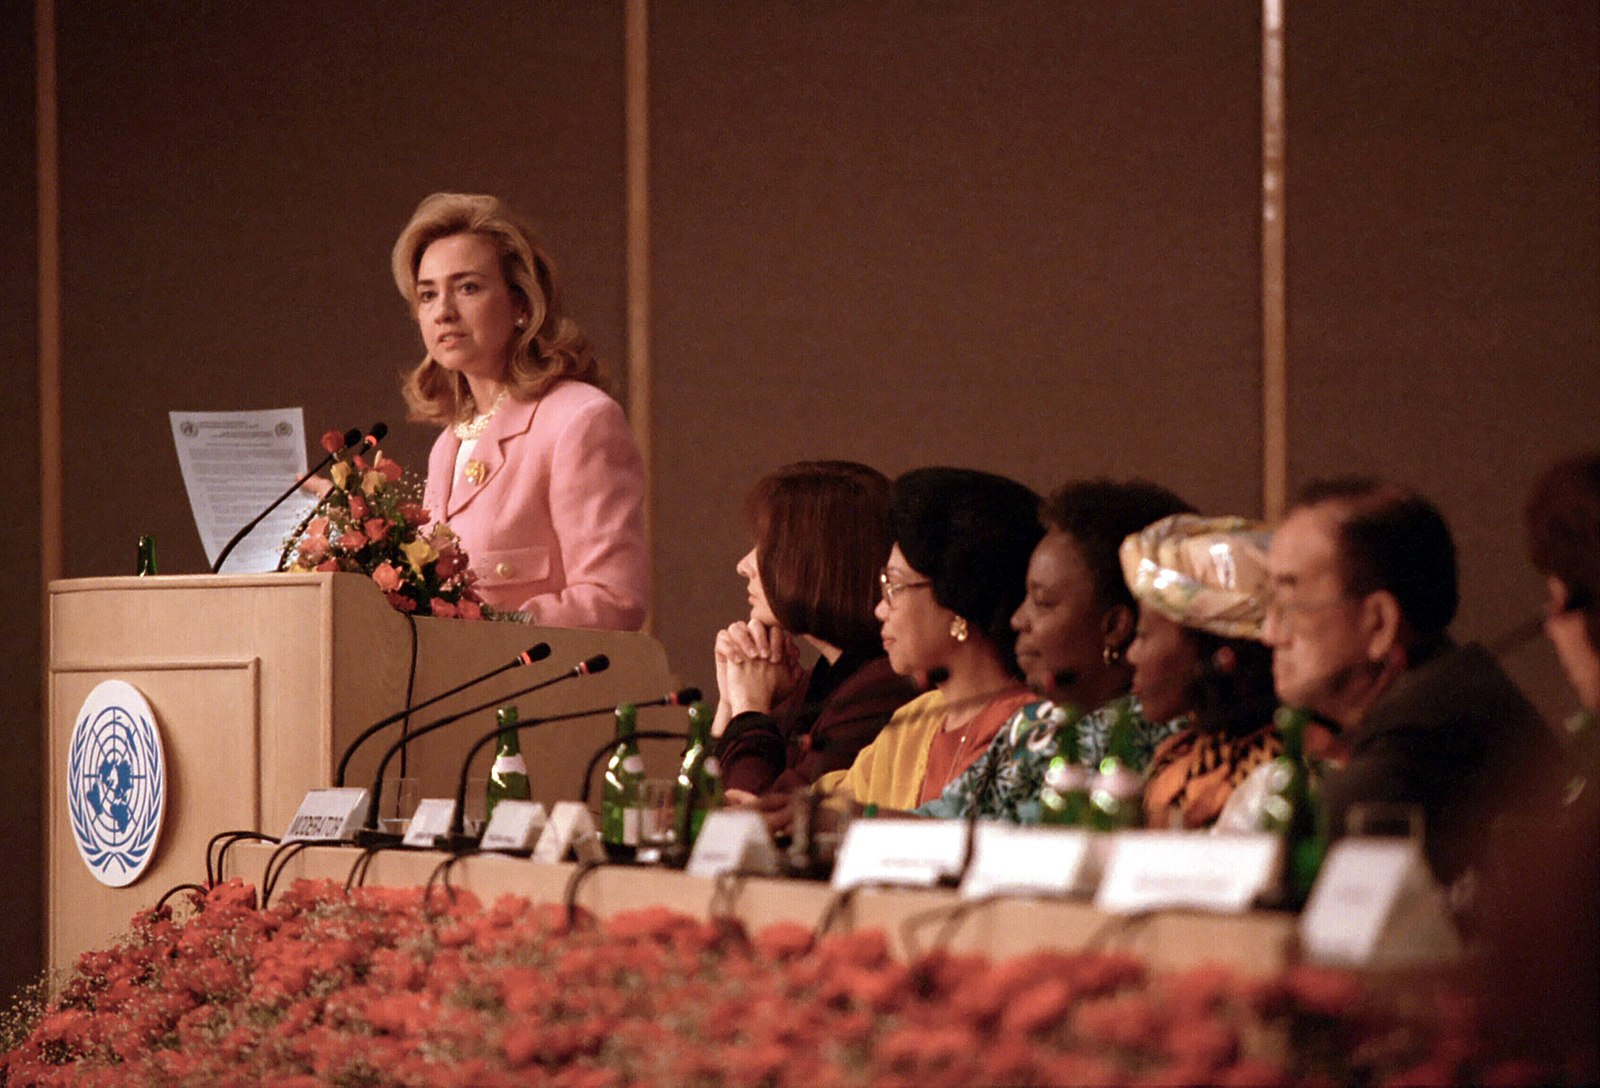 1600px-Hillary_Clinton_at_the_United_Nations_Conference_on_Women_in_Beijing,_China